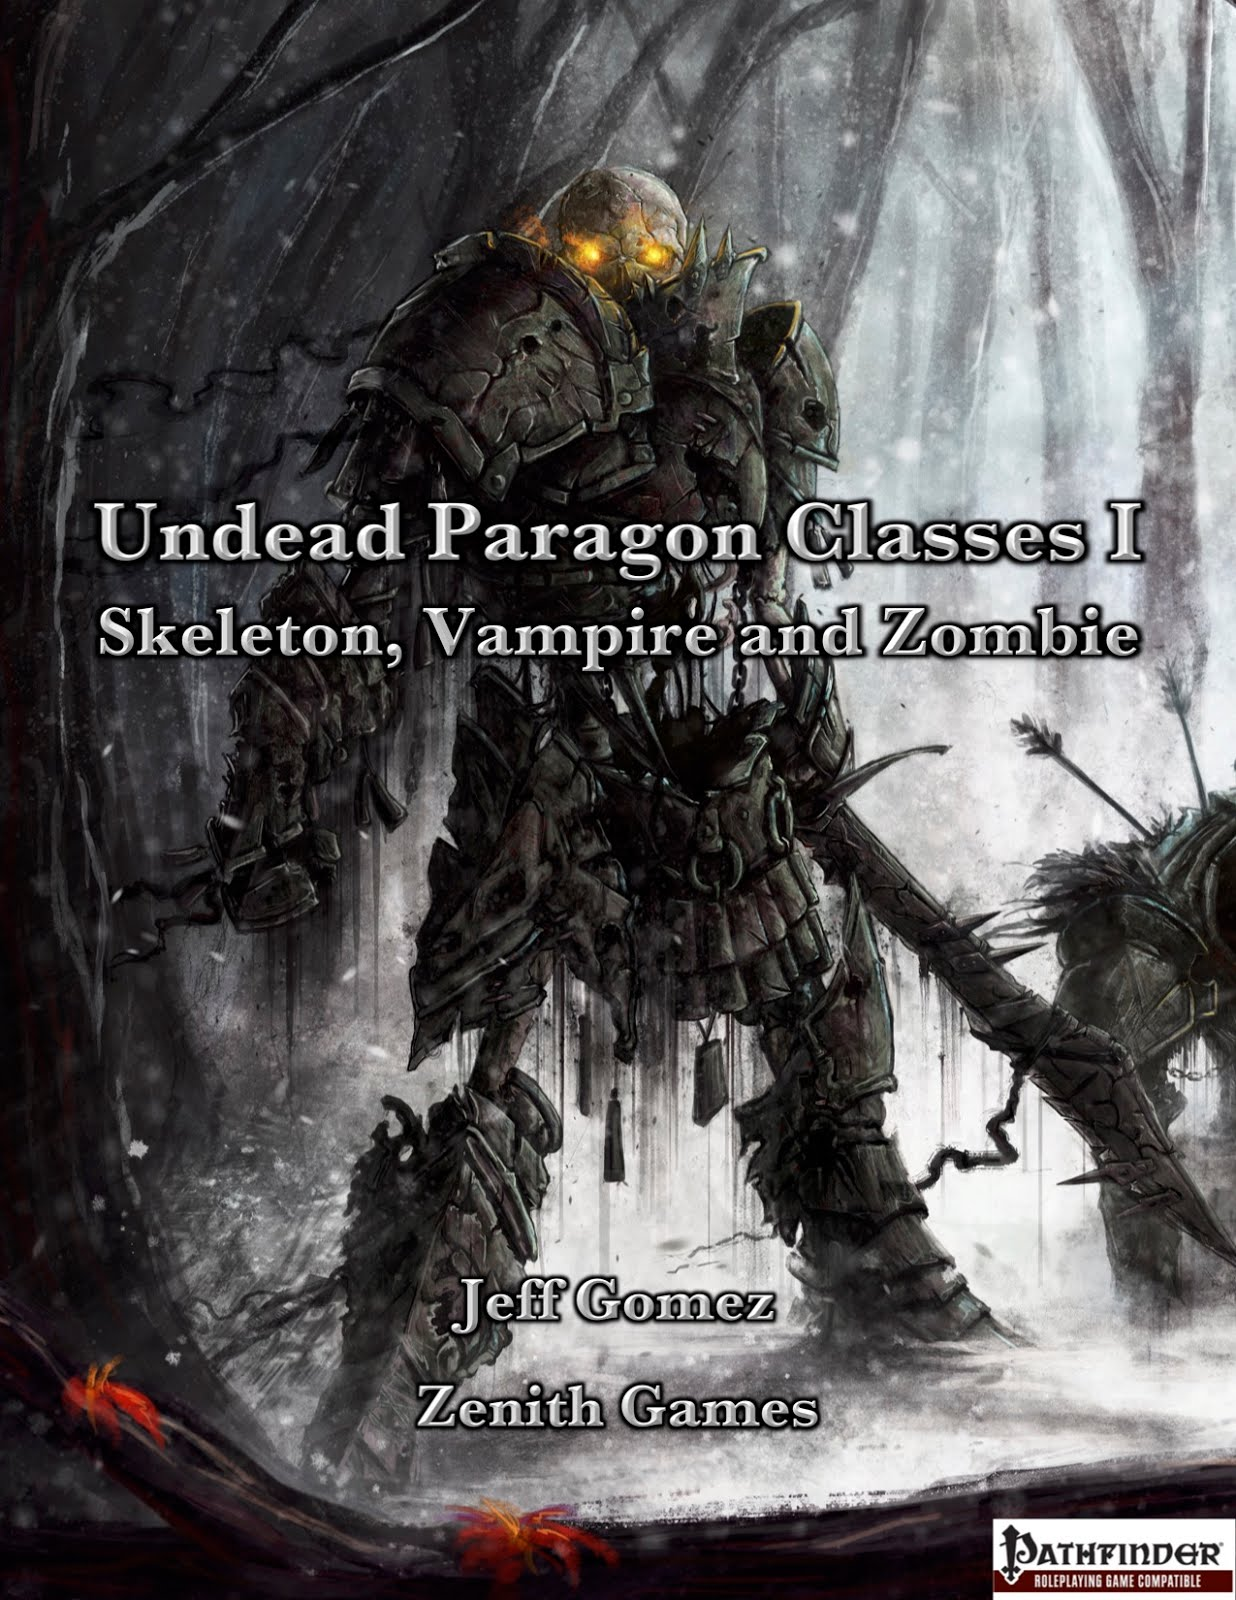 Undead Paragon Classes I: Skeleton, Zombie and Vampire